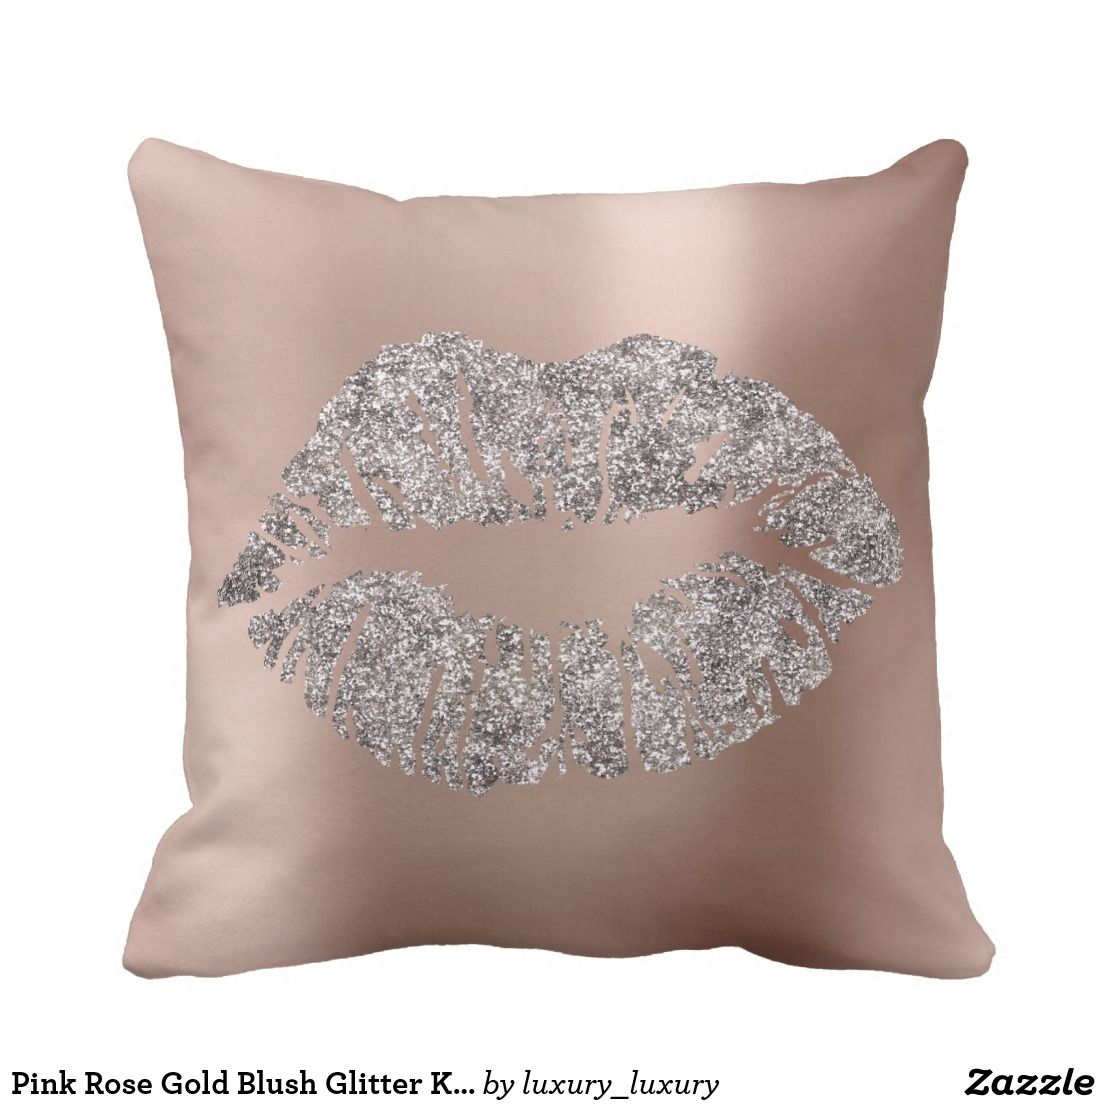 rent nyc pillows blush pillow girls bedrooms designer gold bedding for throw black teen fur